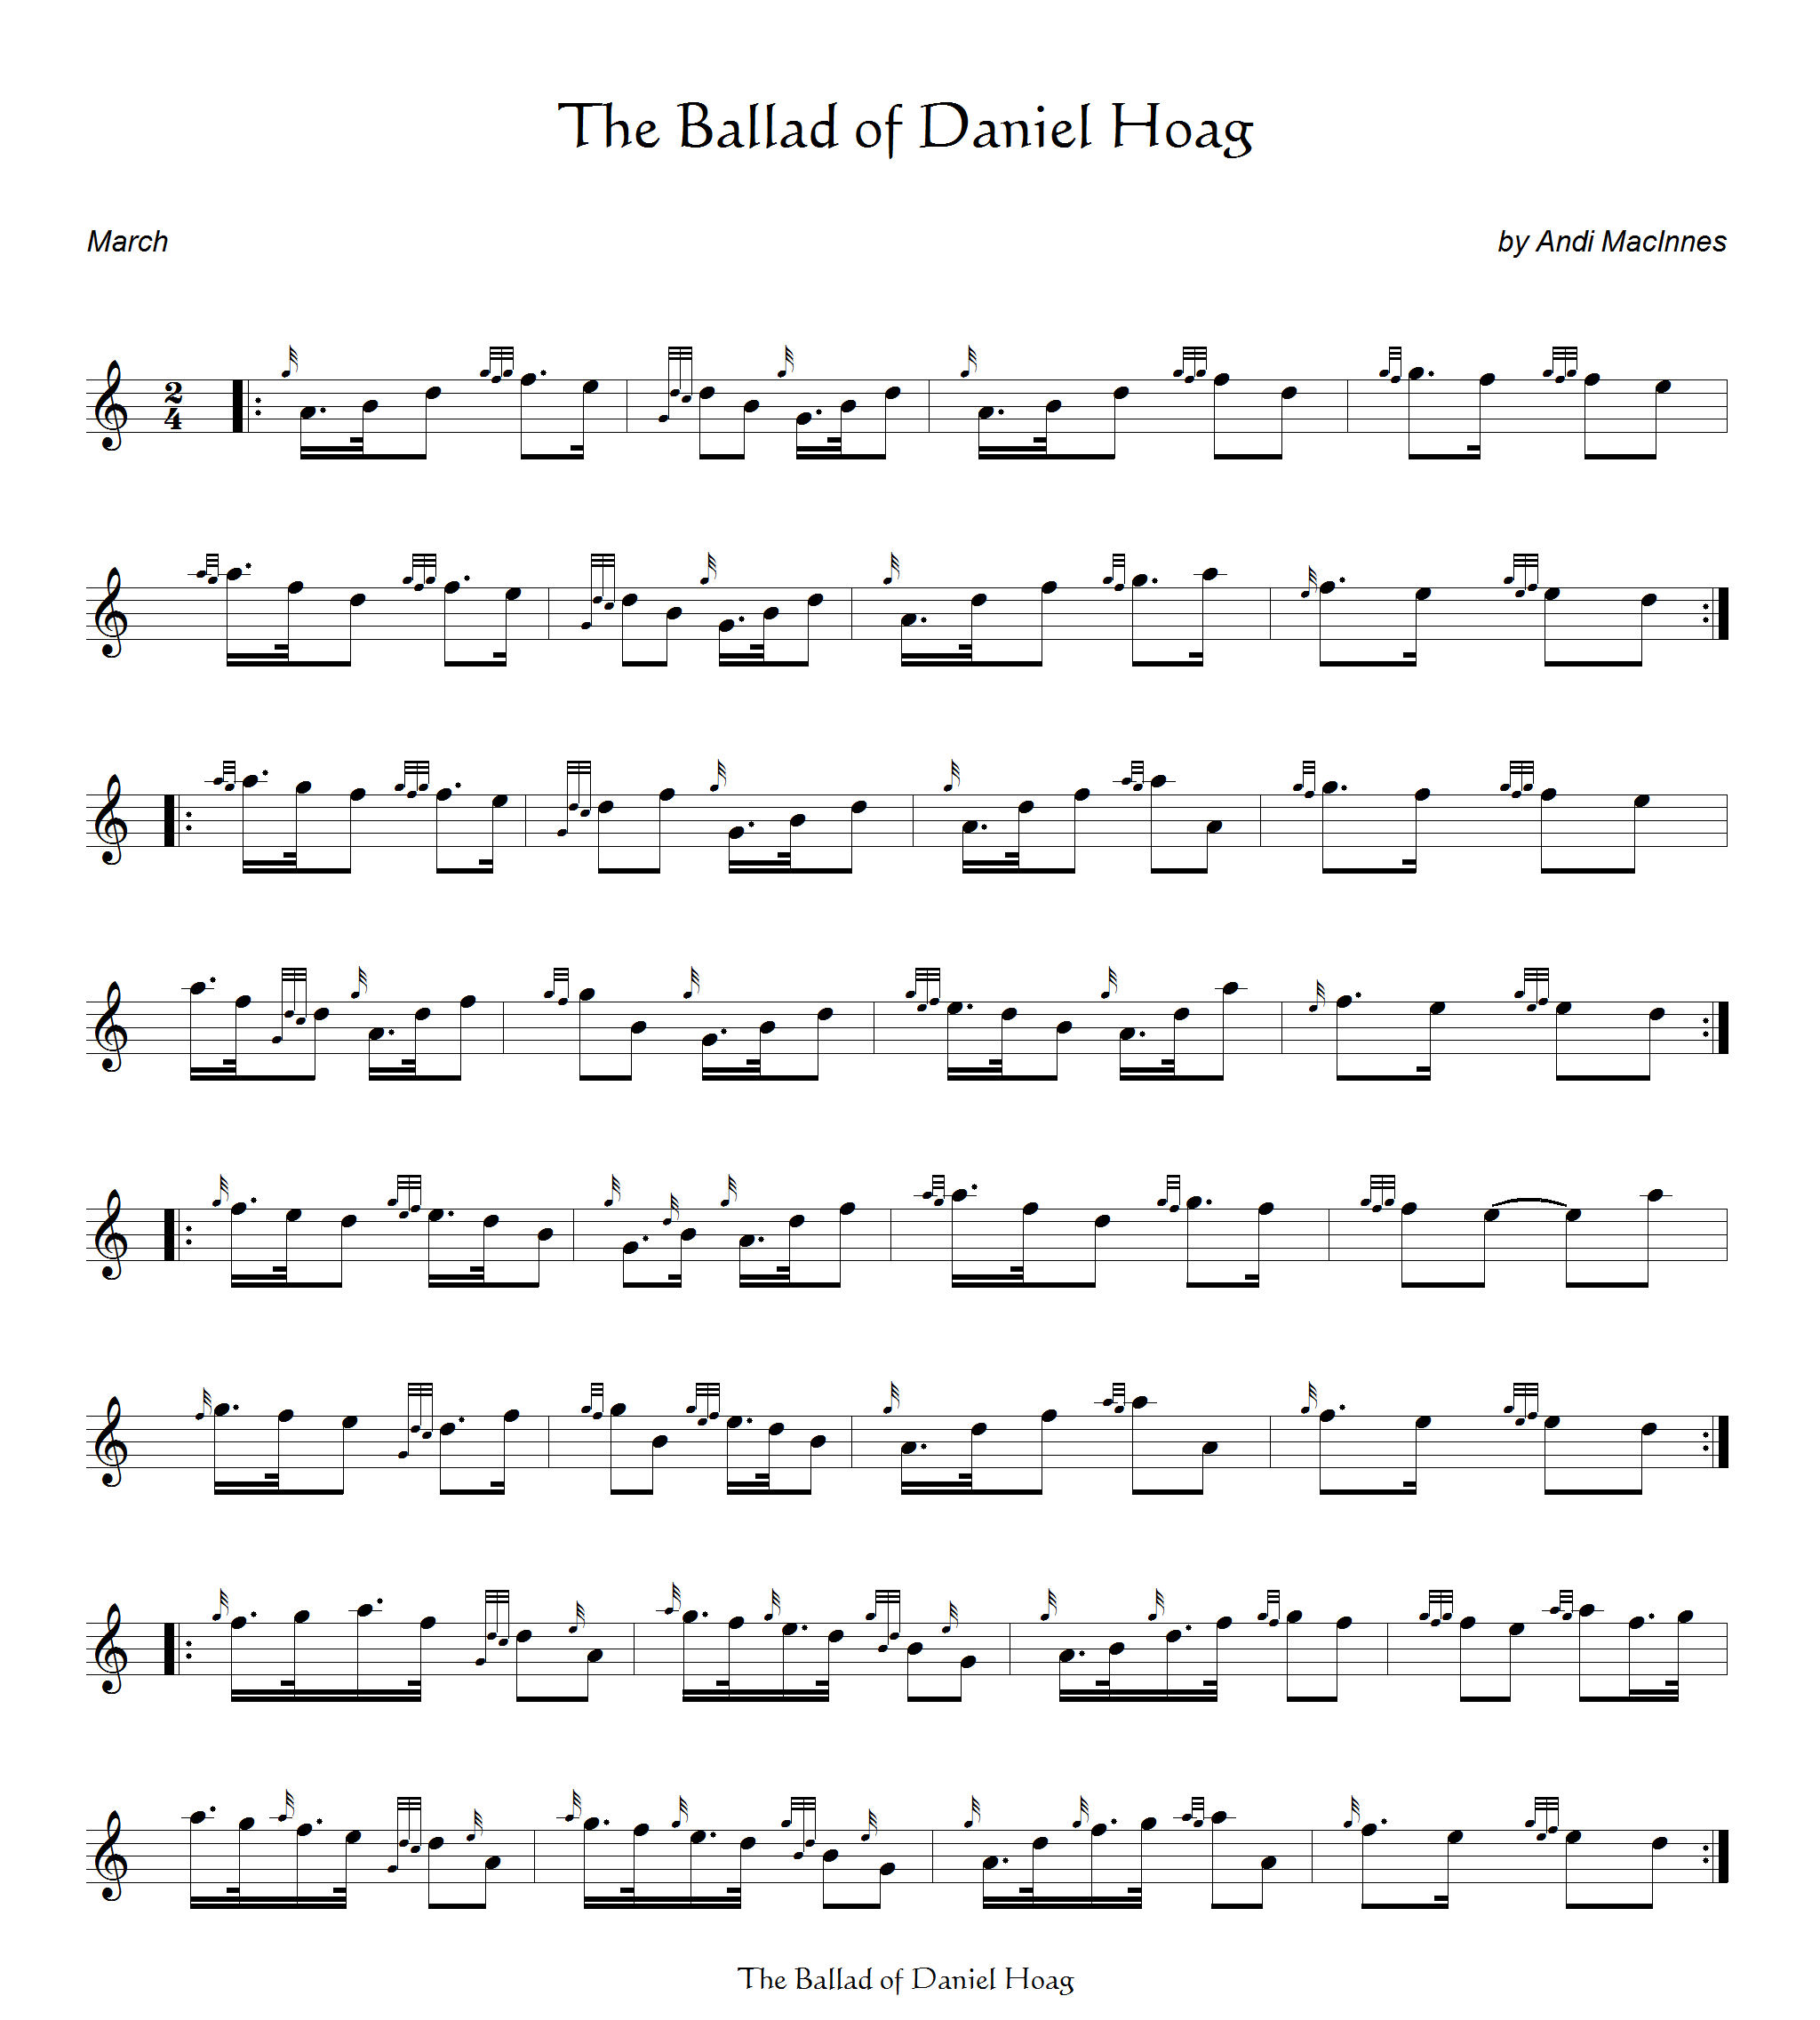 The Ballad of Daniel Hoag.jpg